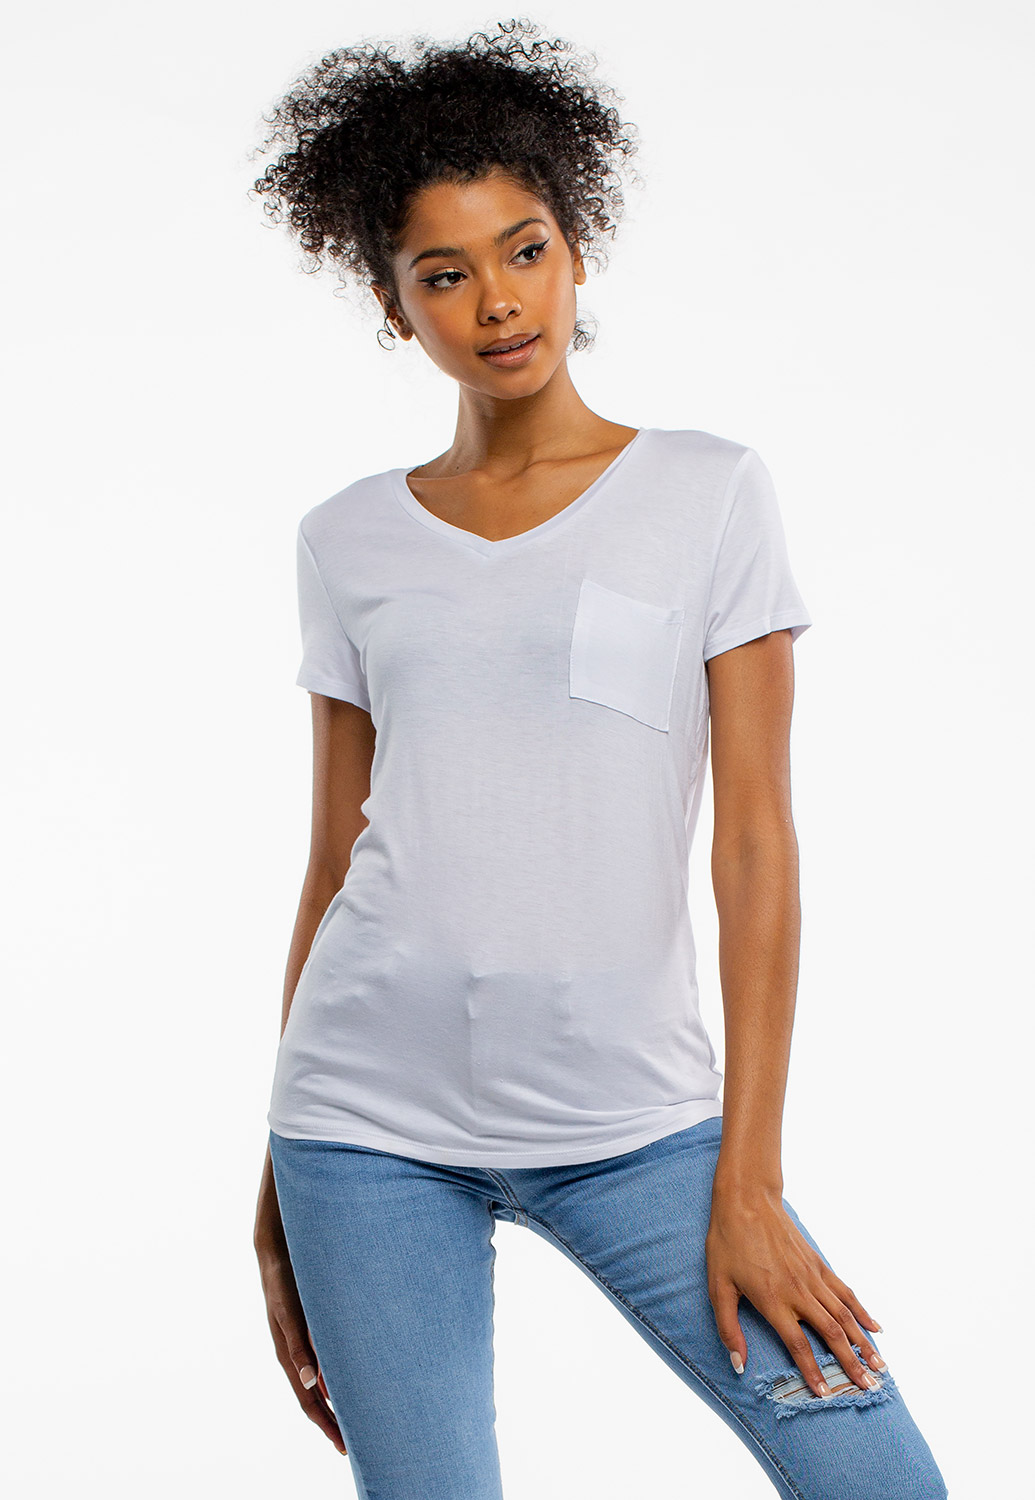 Basic V-Neck Short Sleeve Top With Pocket